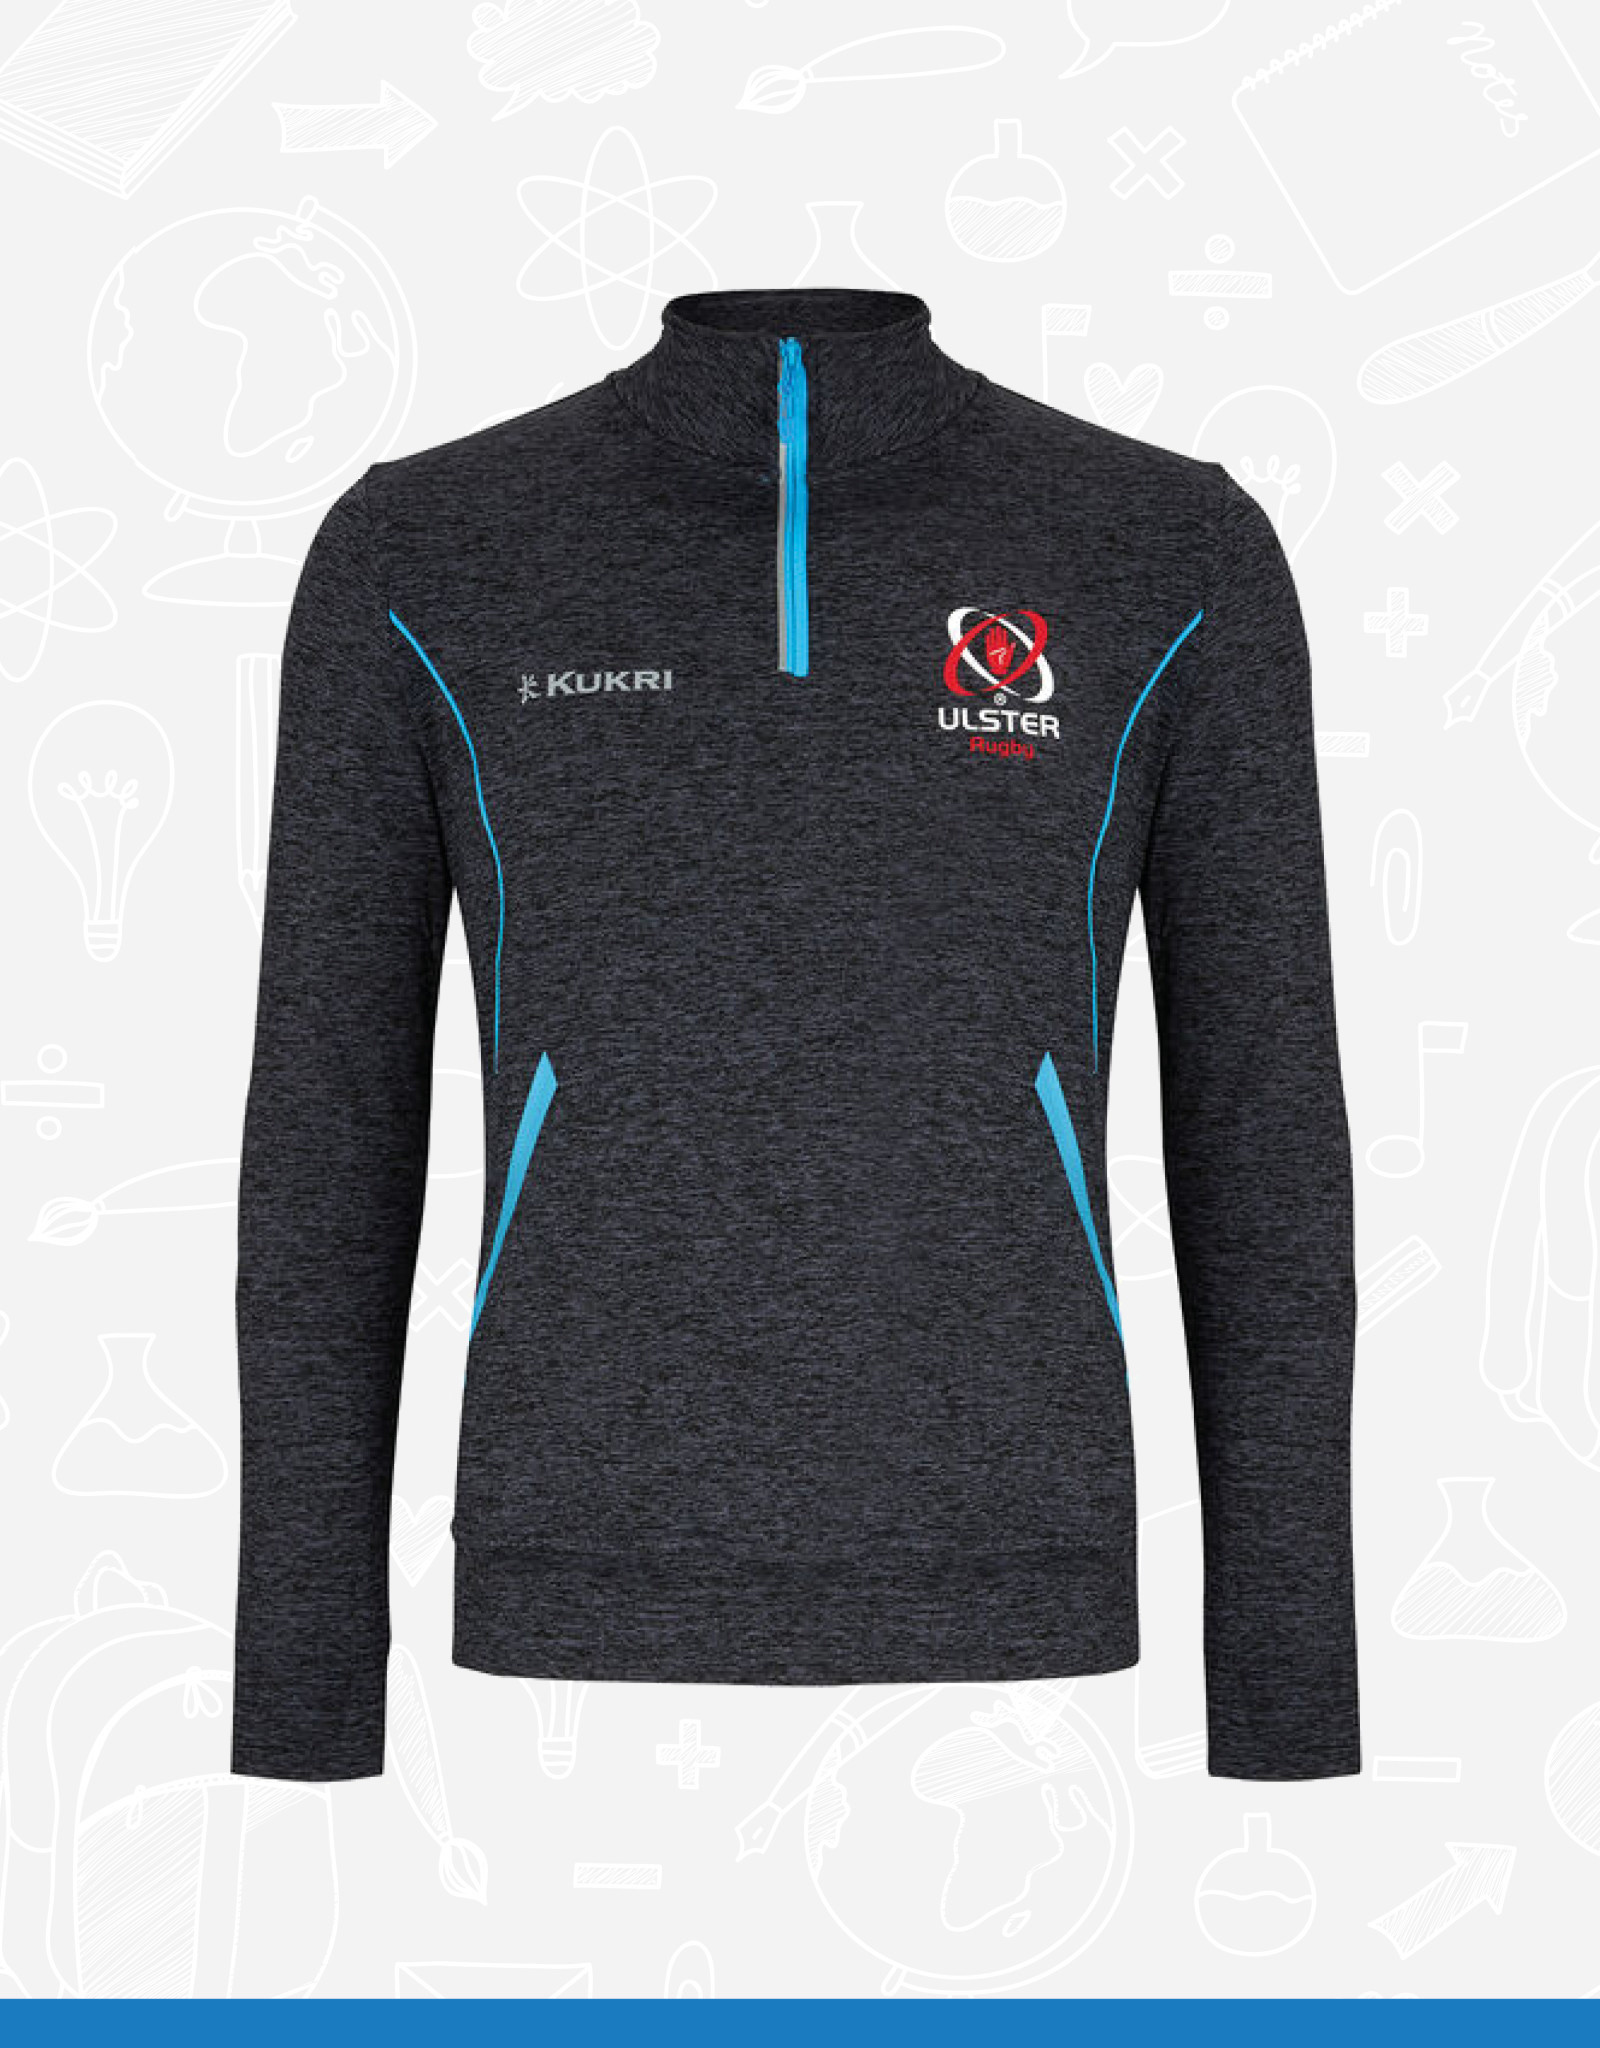 Kukri Ulster Rugby Adult 1/4 Zip